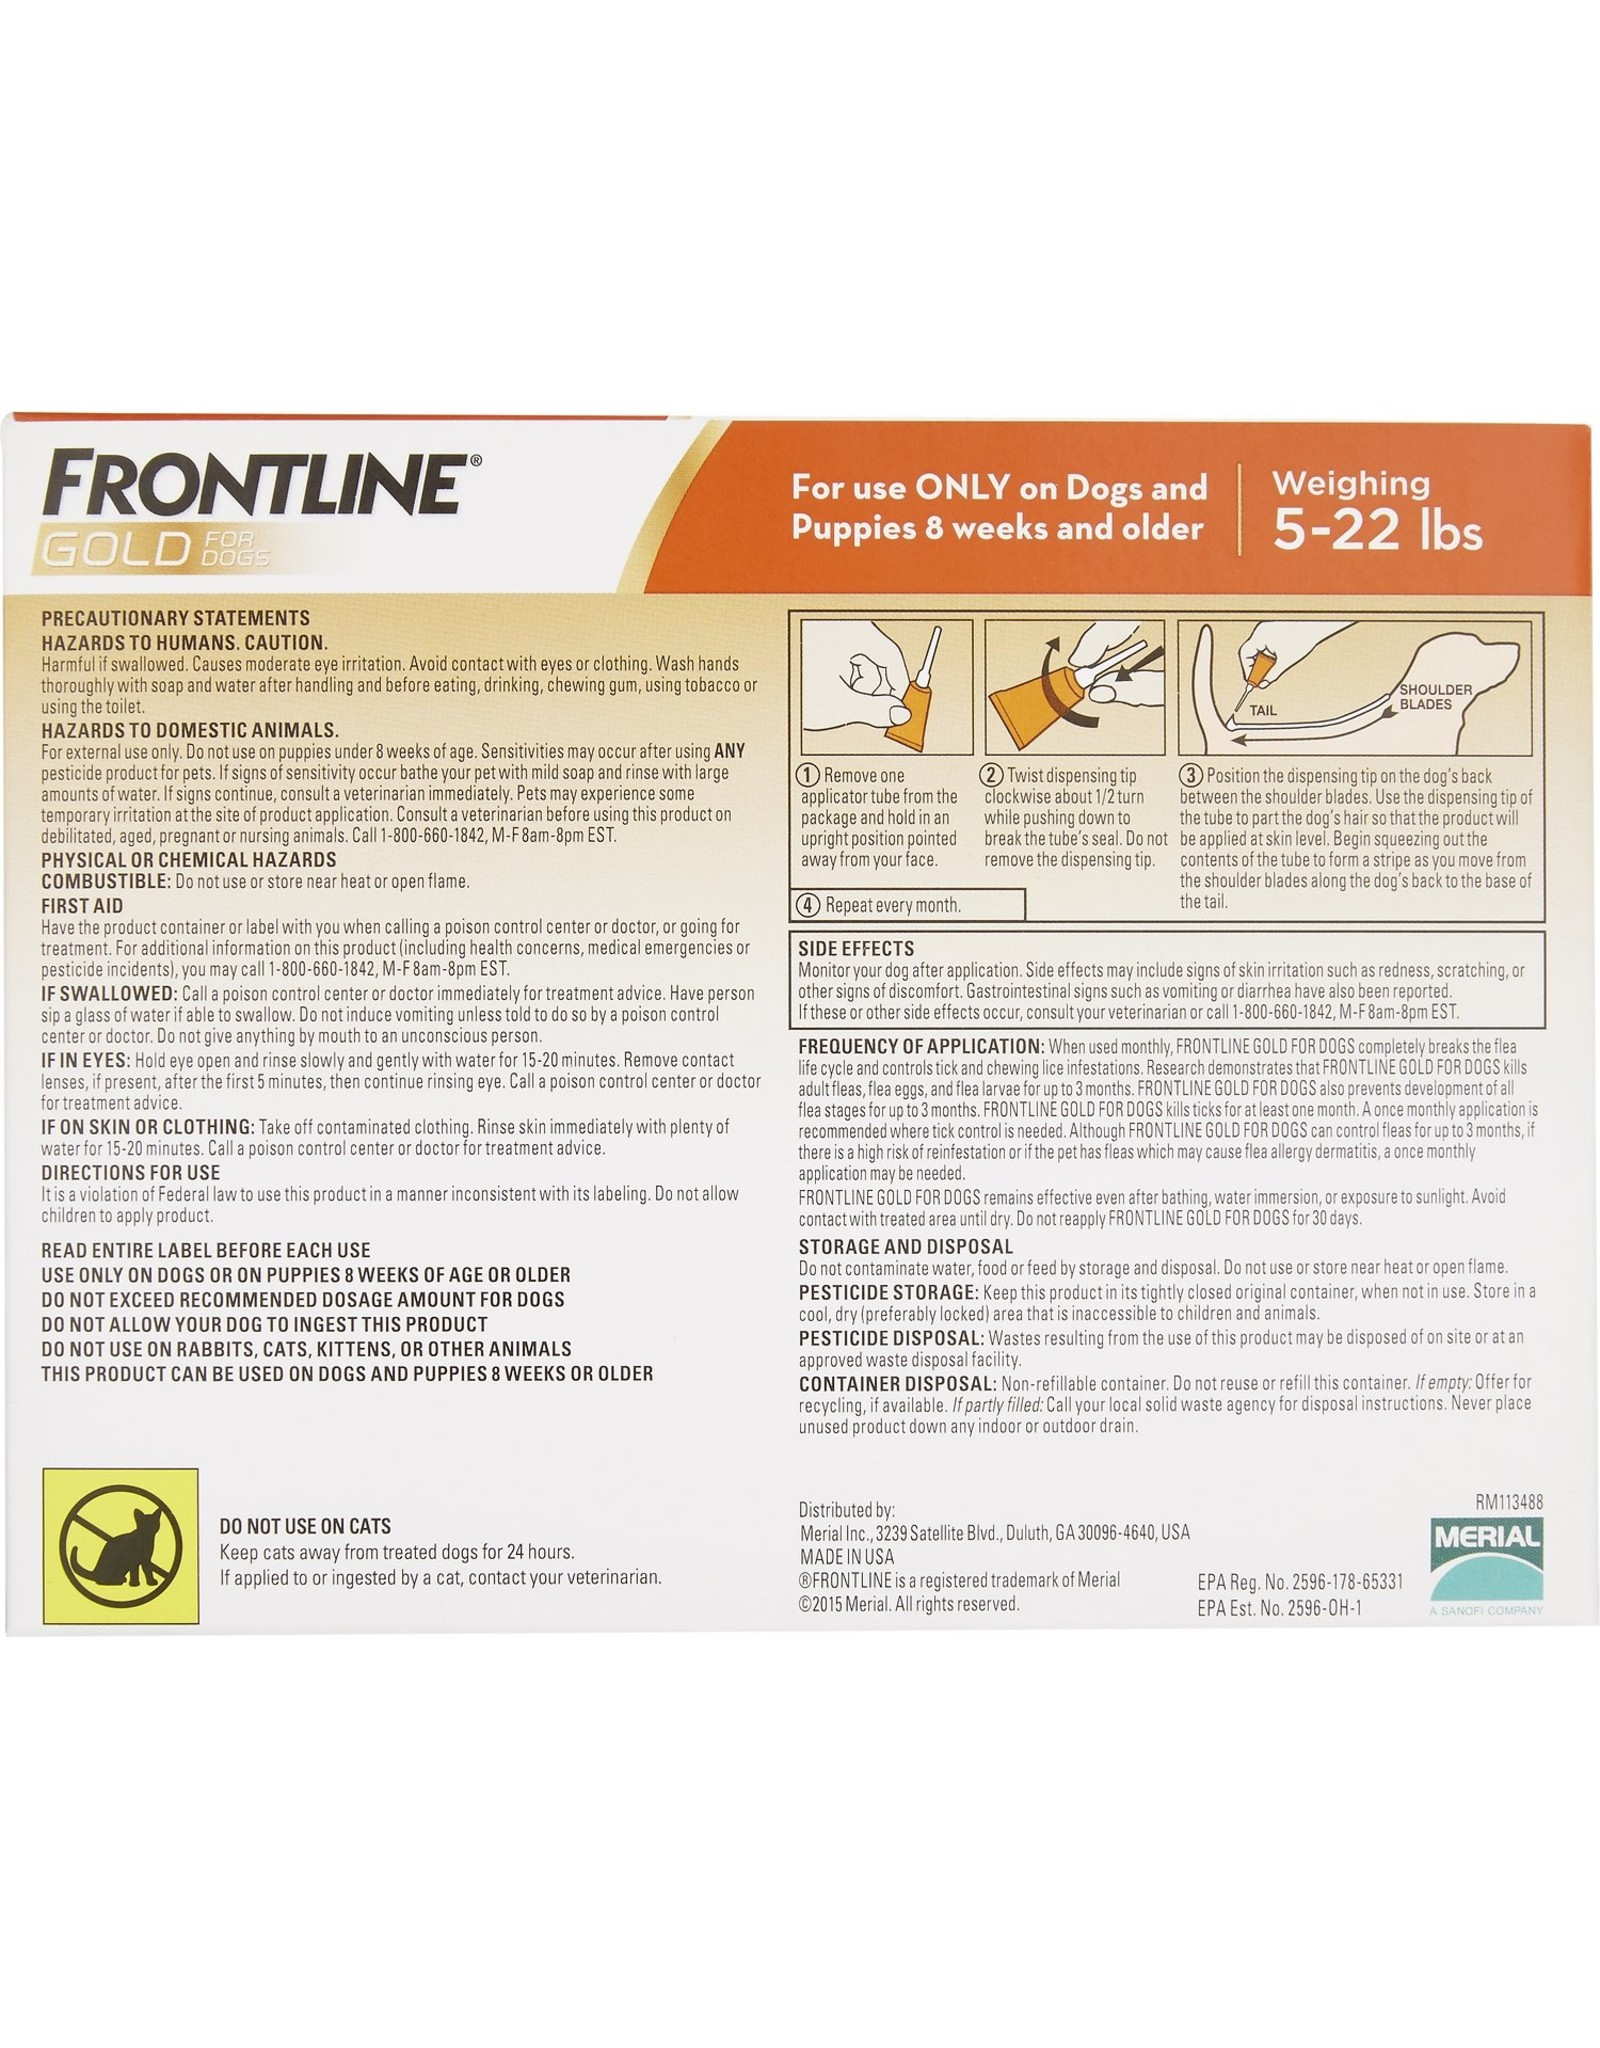 Frontline FRONTLINE GOLD FOR DOGS FLEA & TICK TOPICAL SOLUTION 3 DOSES